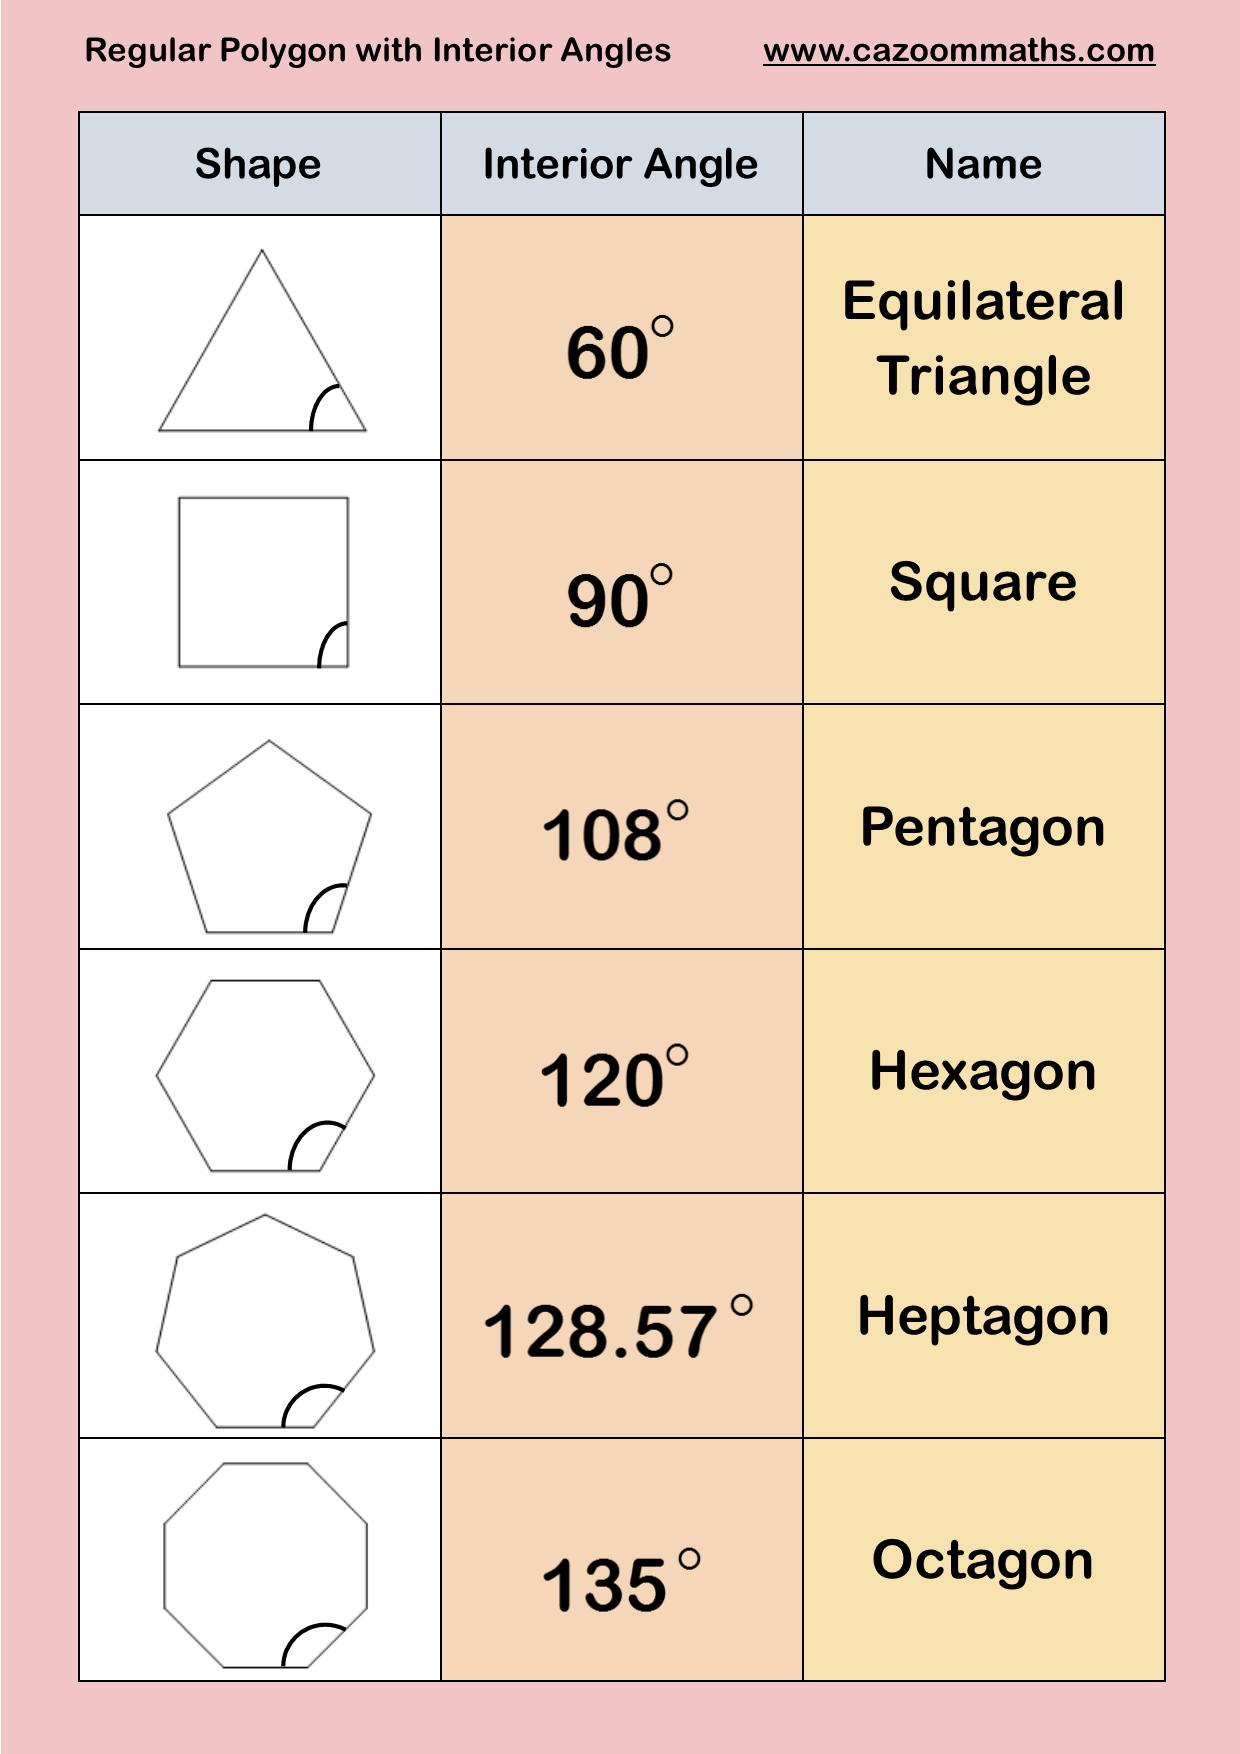 Polygons | Cazoom Maths Worksheets Regular Polygons with ...